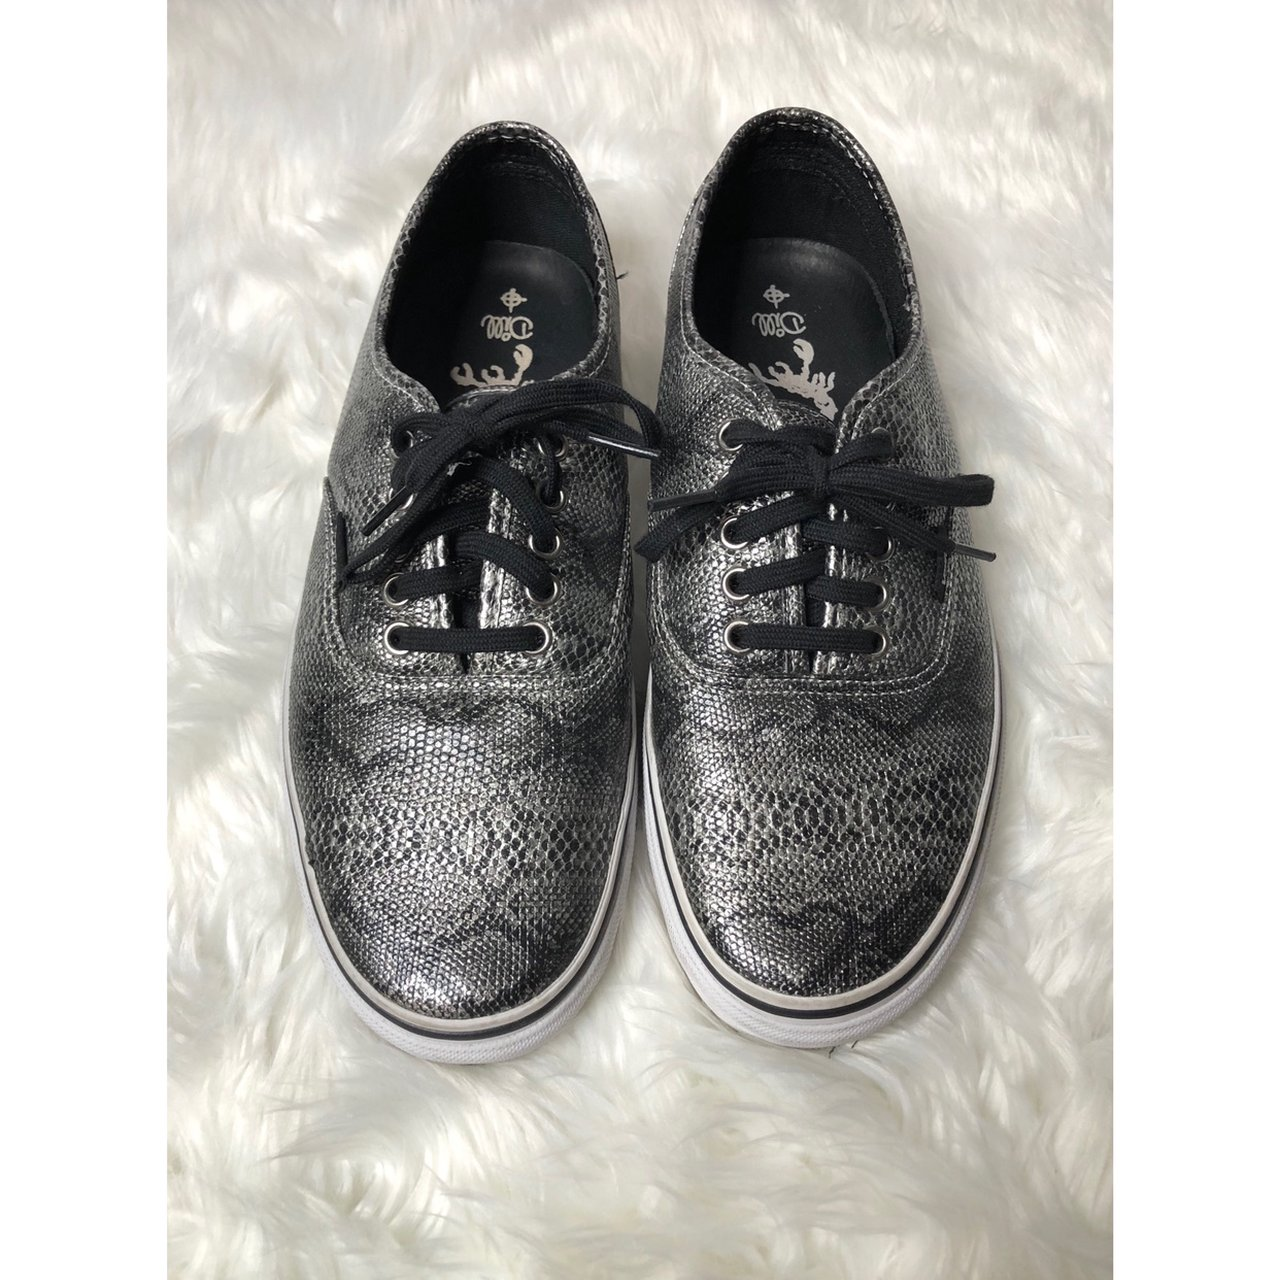 3e62f5e3a690ee Vans jason dill snakeskin shoes size o box any depop jpg 1280x1280 Jason  dill shoes